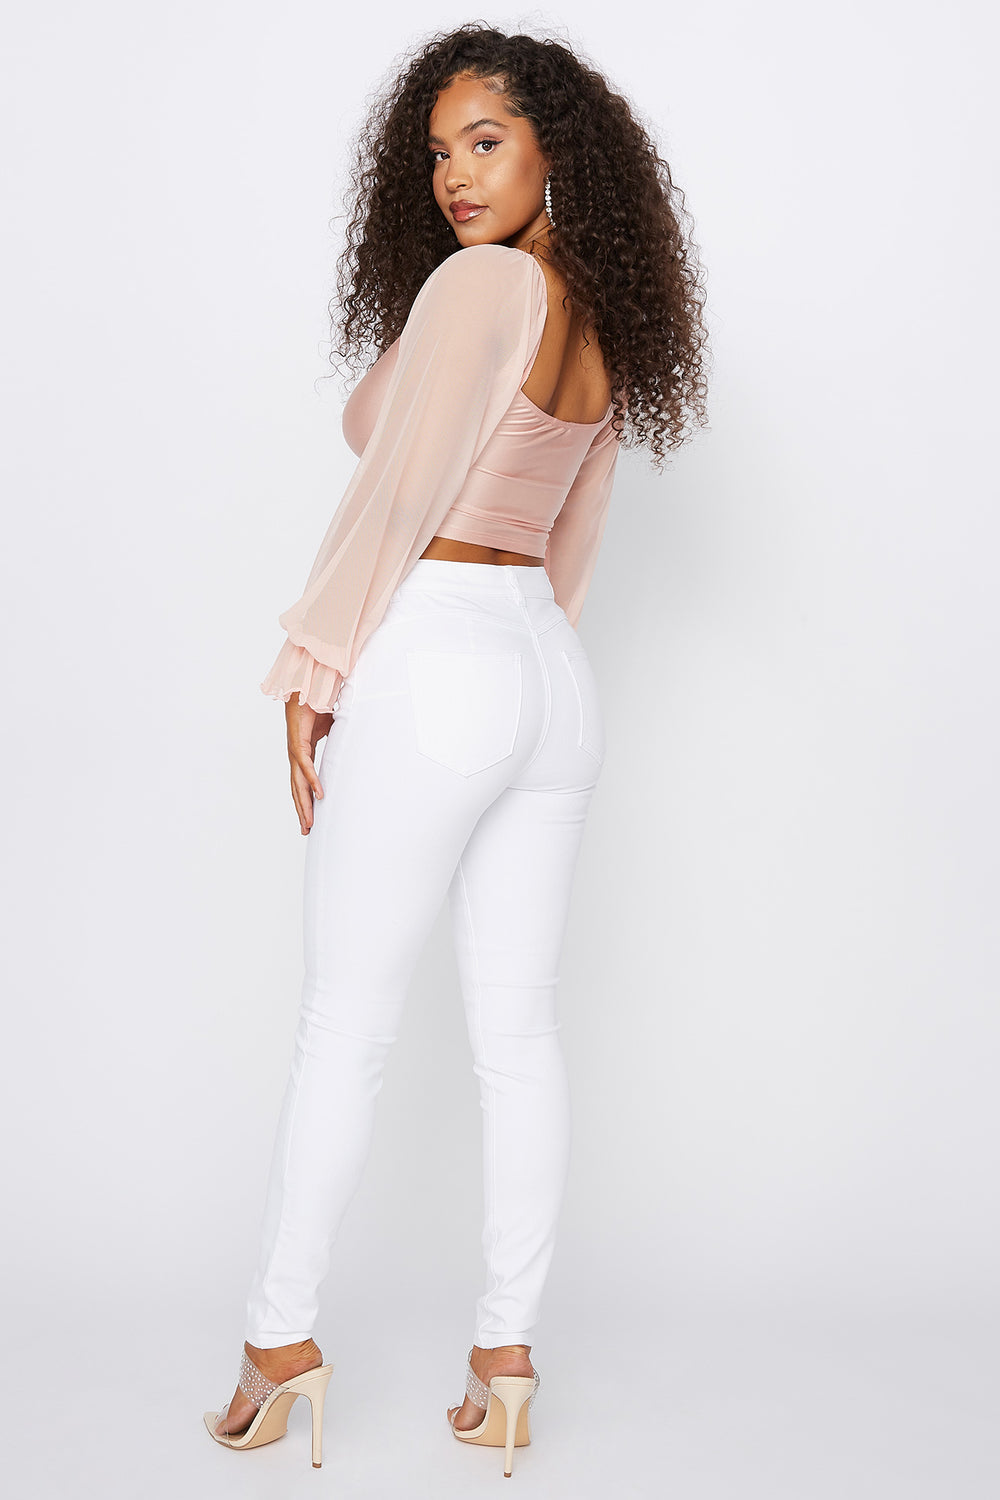 Refuge Rio White Mid-Rise Super Skinny Push Up Jean White